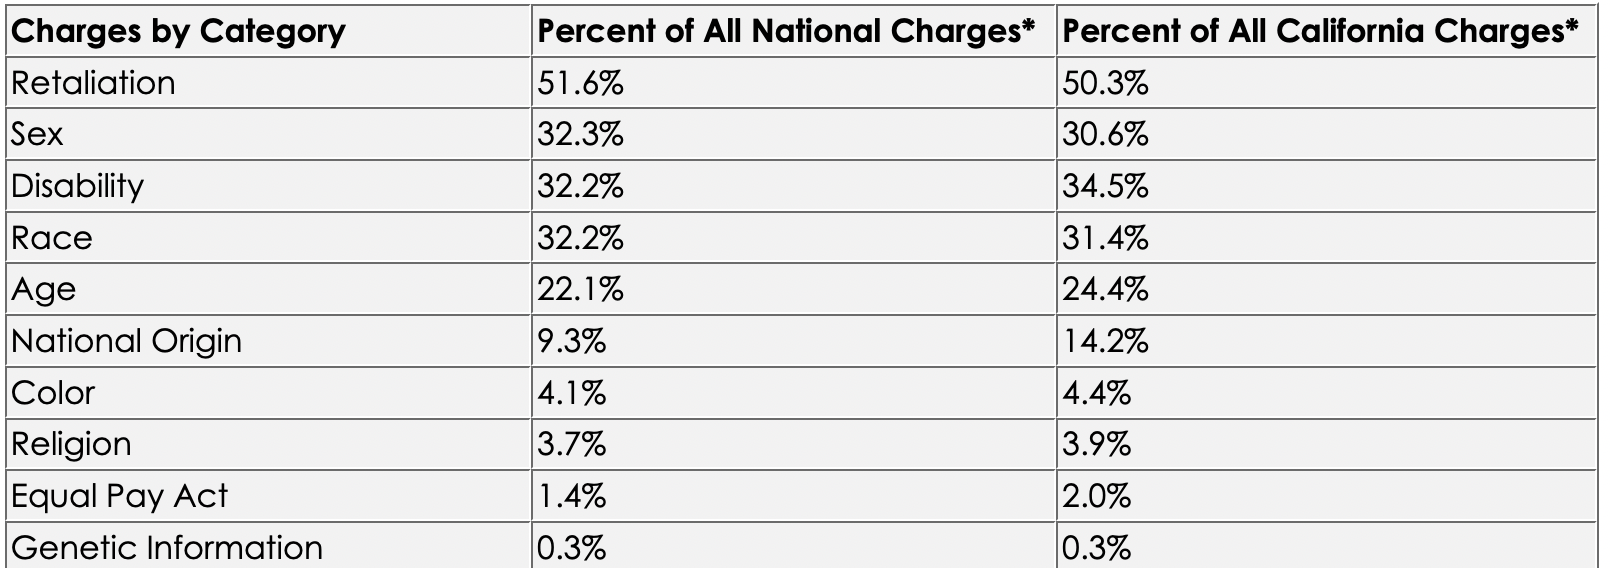 *Percentages add up to more than 100 due to multiple charges in some filings